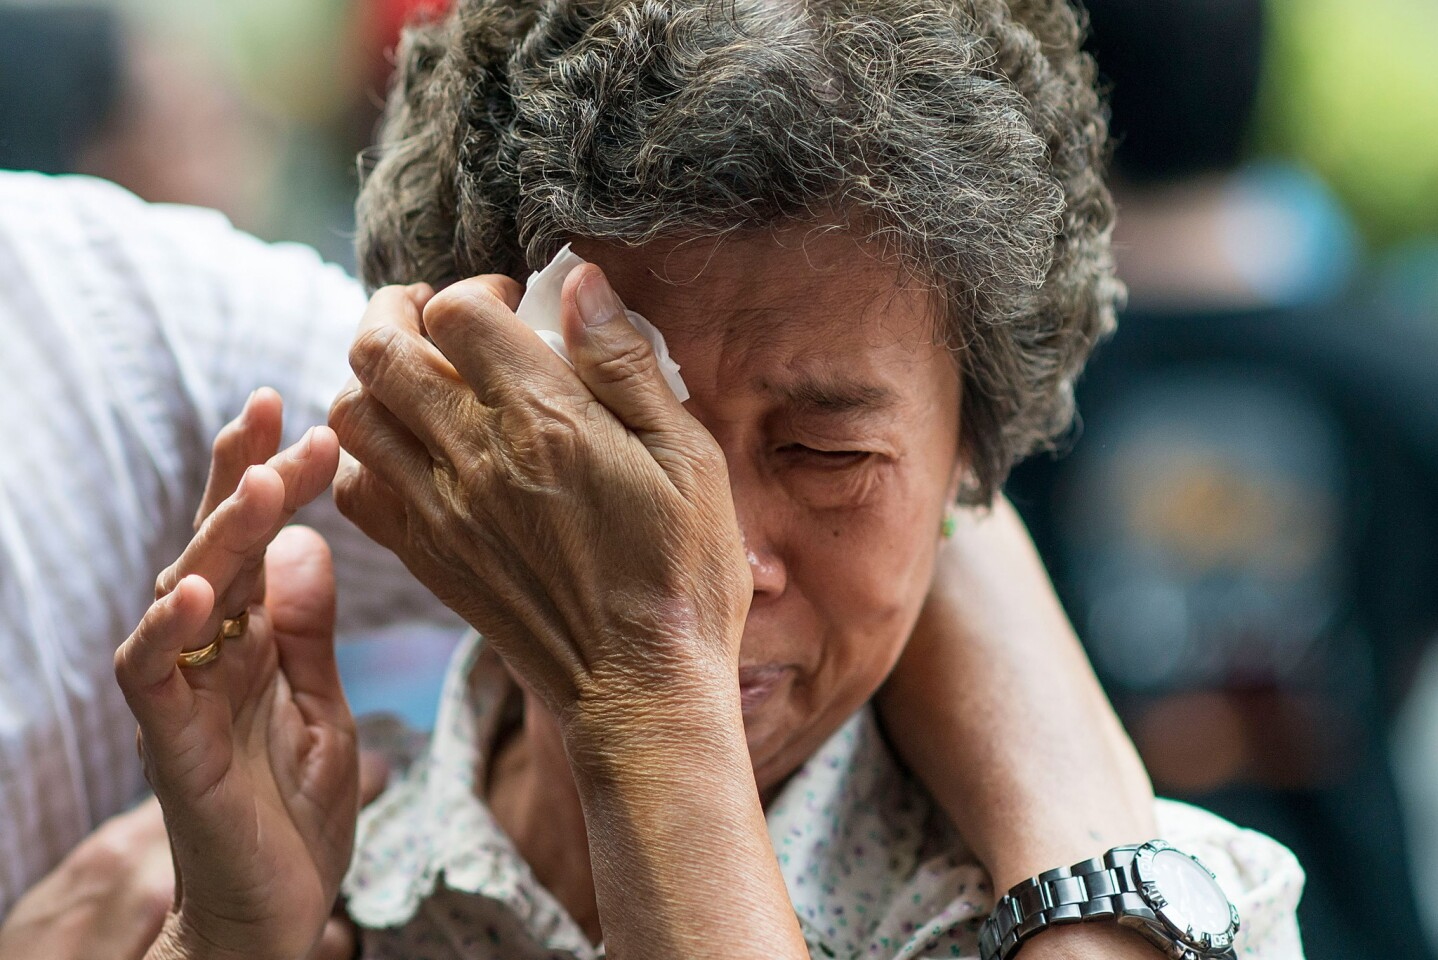 The mother of a Flight MH370 passenger reacts at a memorial service in Kuala Lumpur, Malaysia.